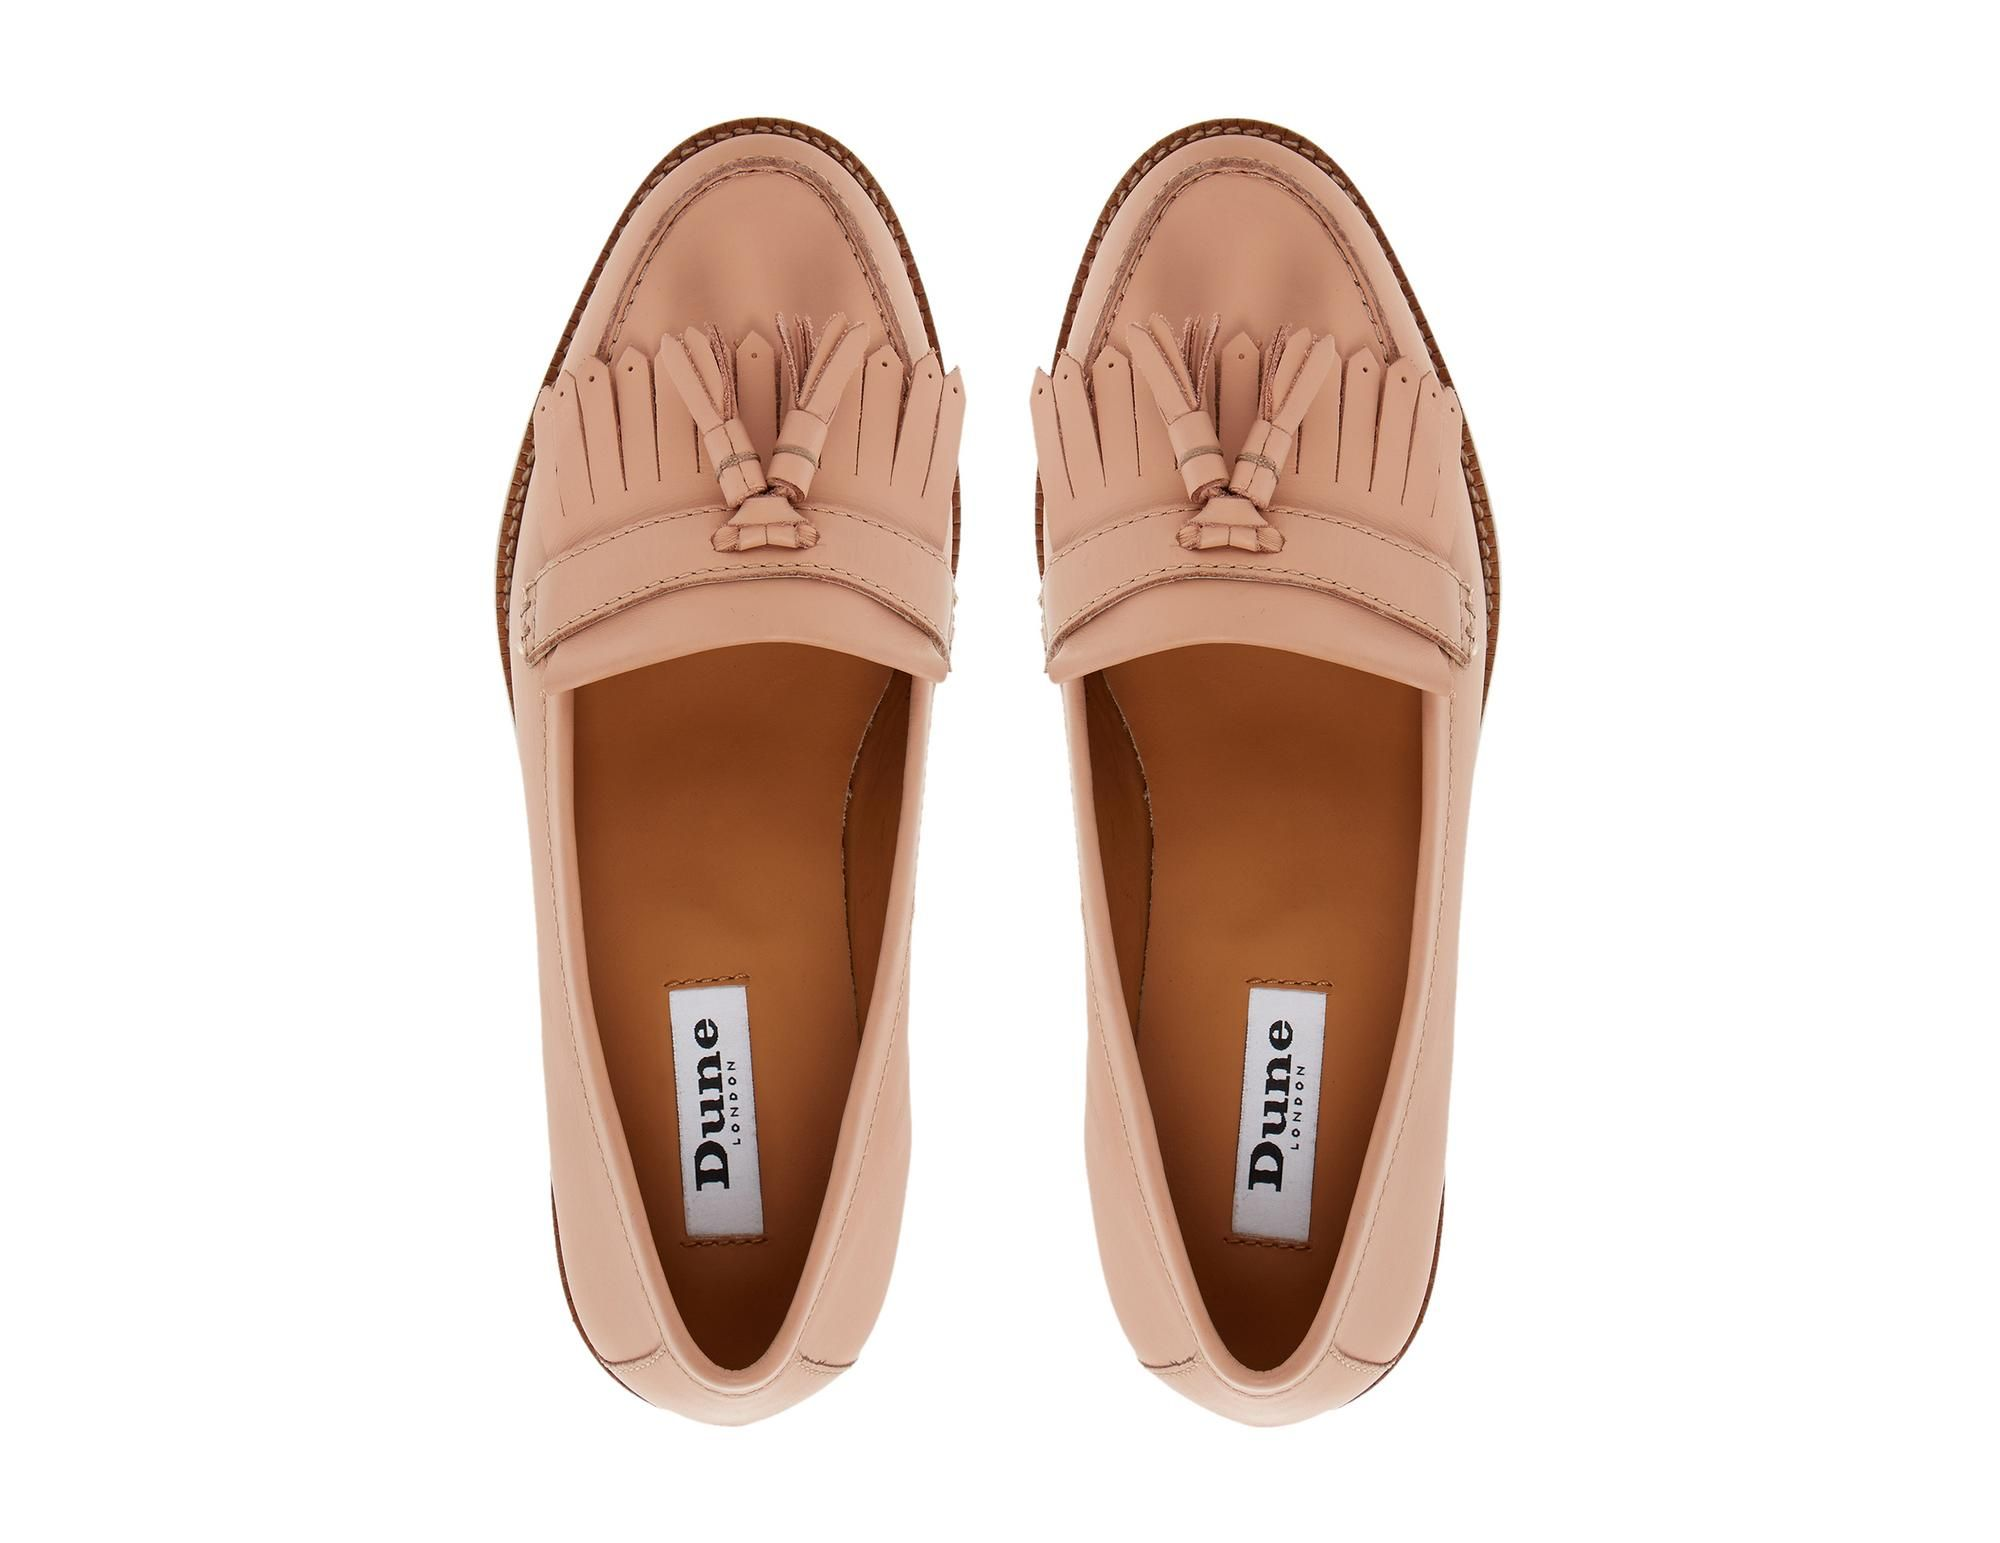 addb51f27 DUNE LADIES GOOSIE - Fringe And Tassel Trim Loafer by Dune London   dunelondon  dune